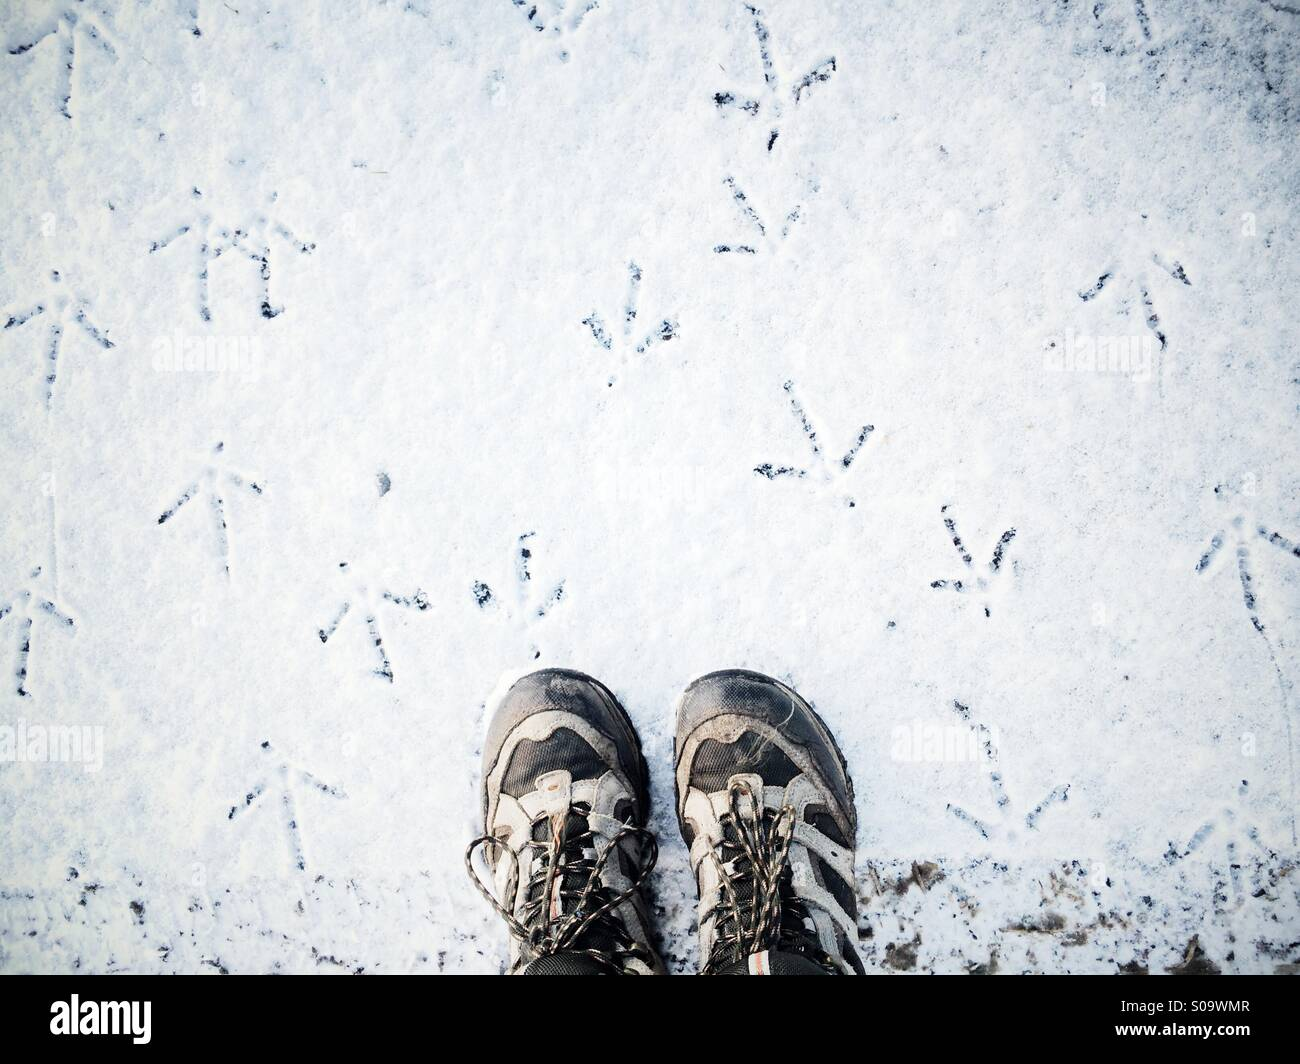 Looking down at hiking boots in the snow with pheasant tracks in all directions. - Stock Image